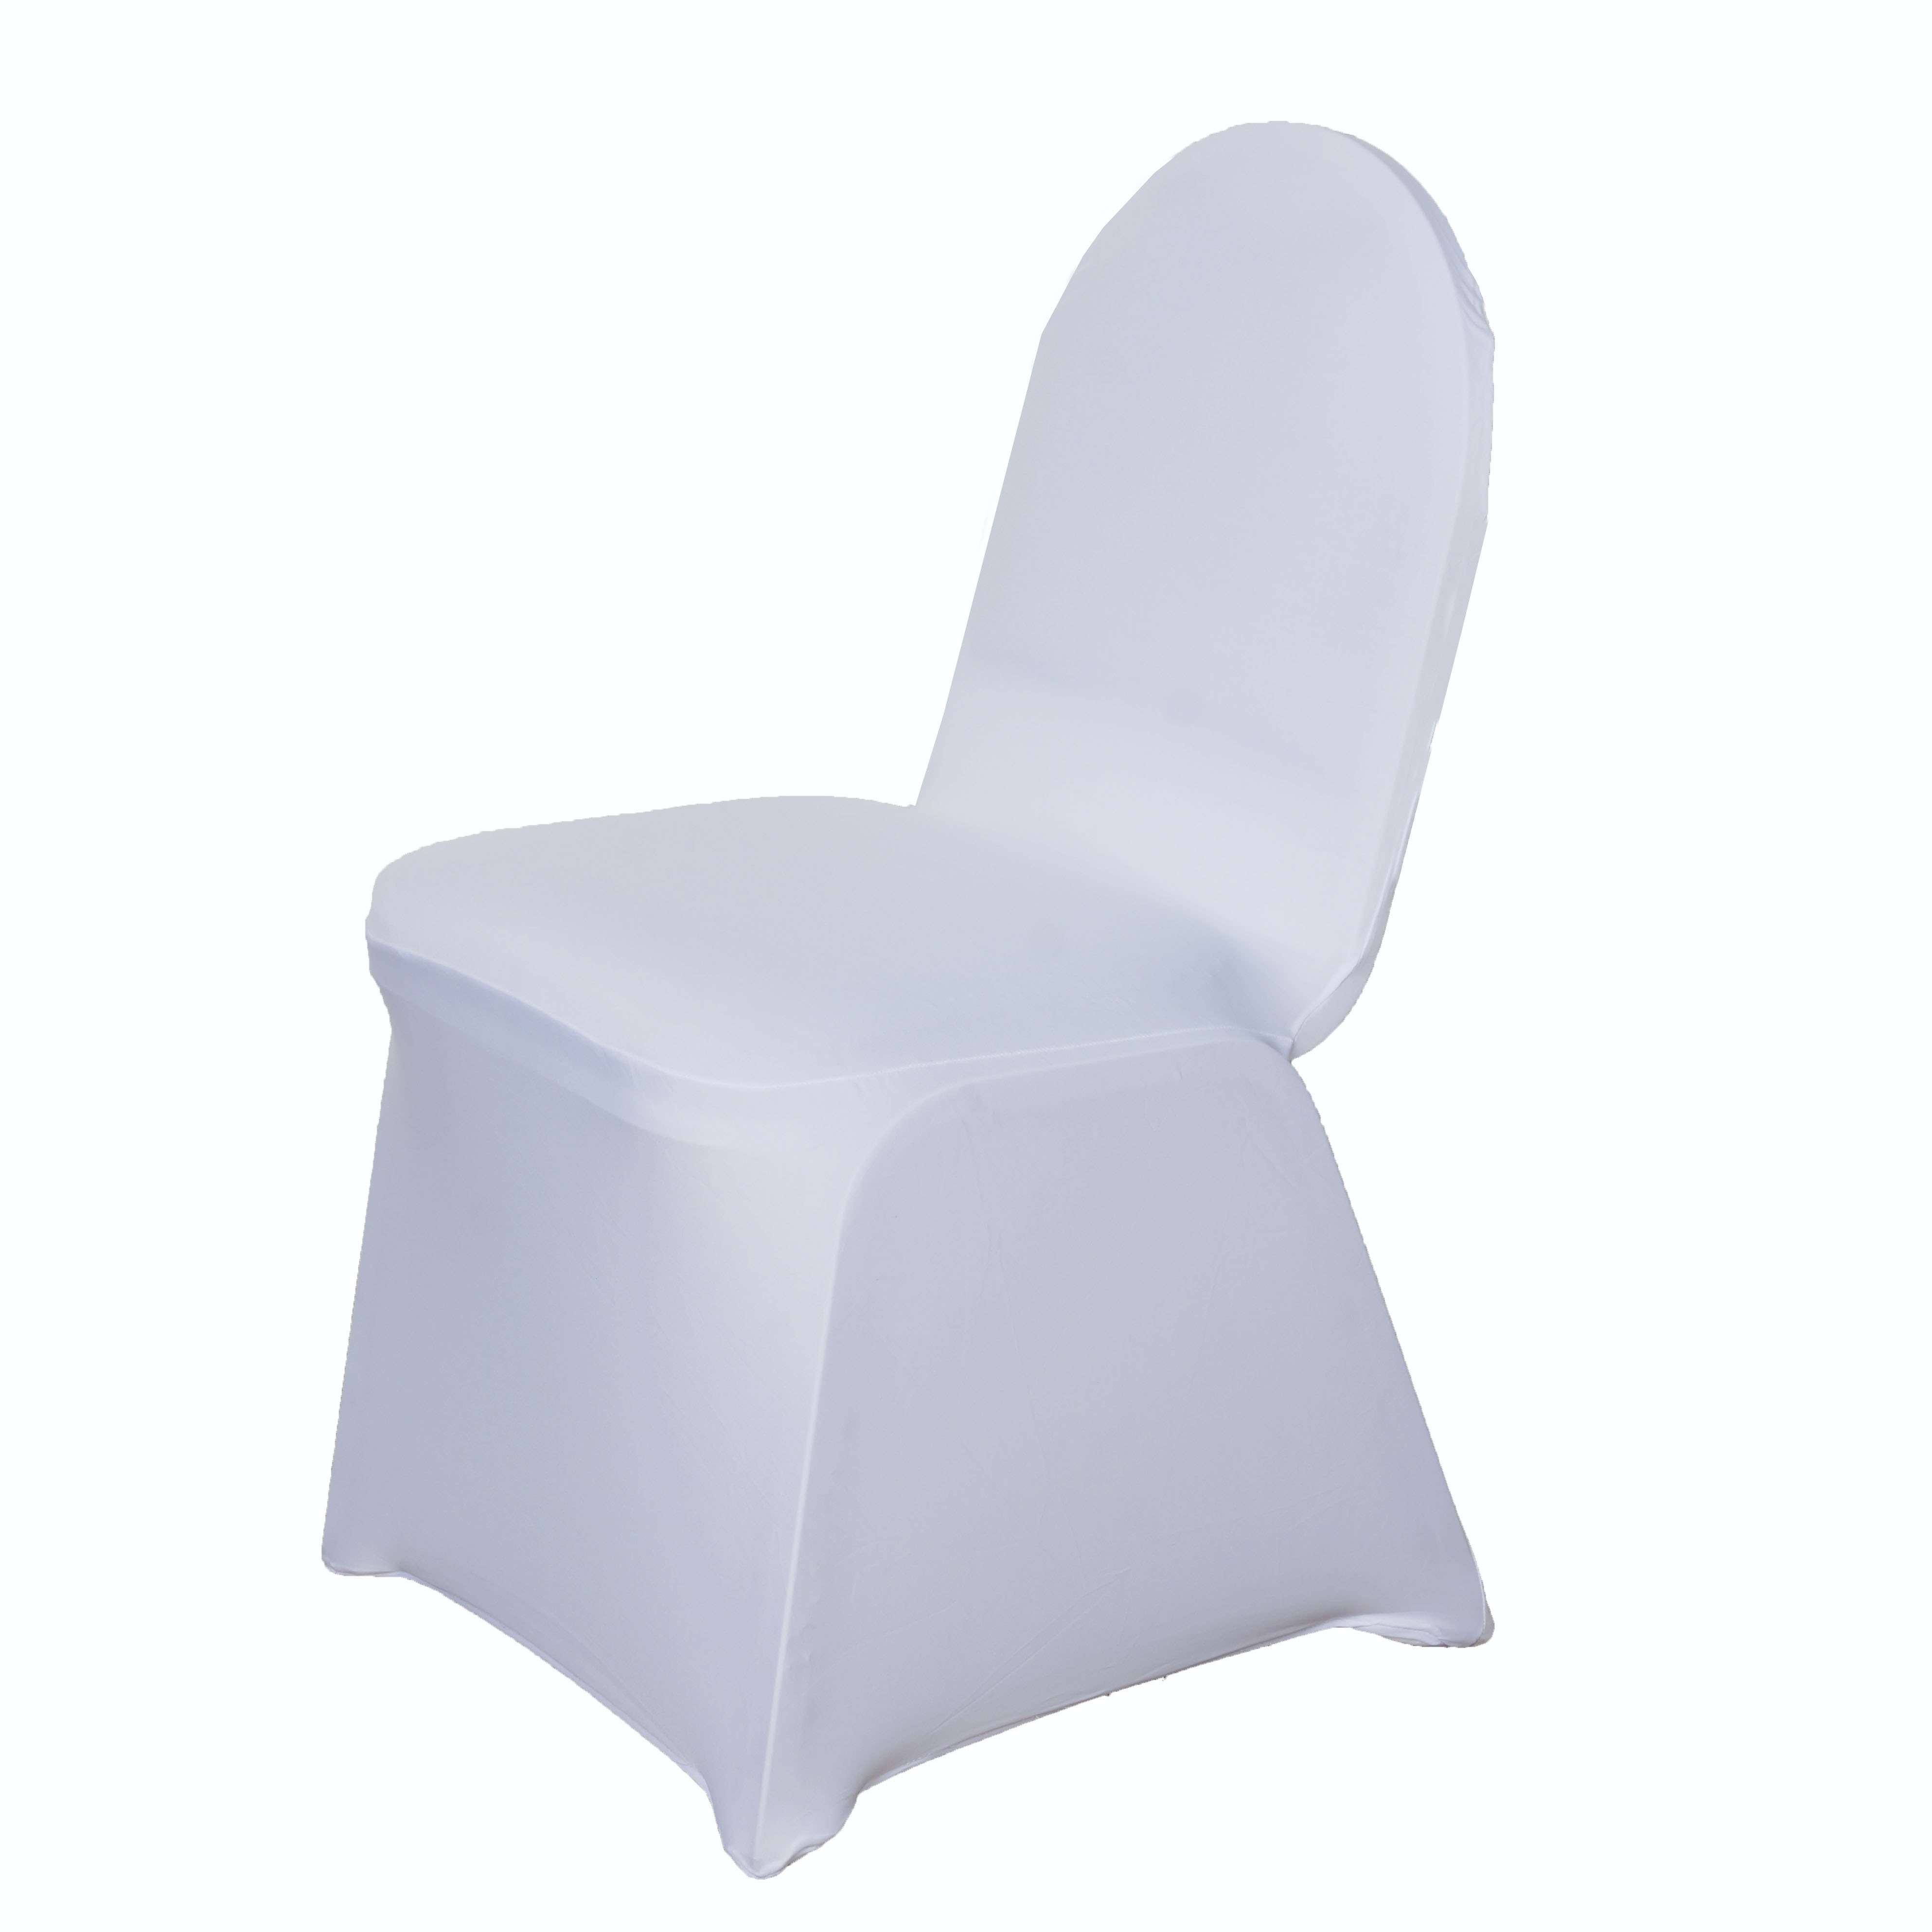 stretchable high quality chair covers party wedding supplies sale